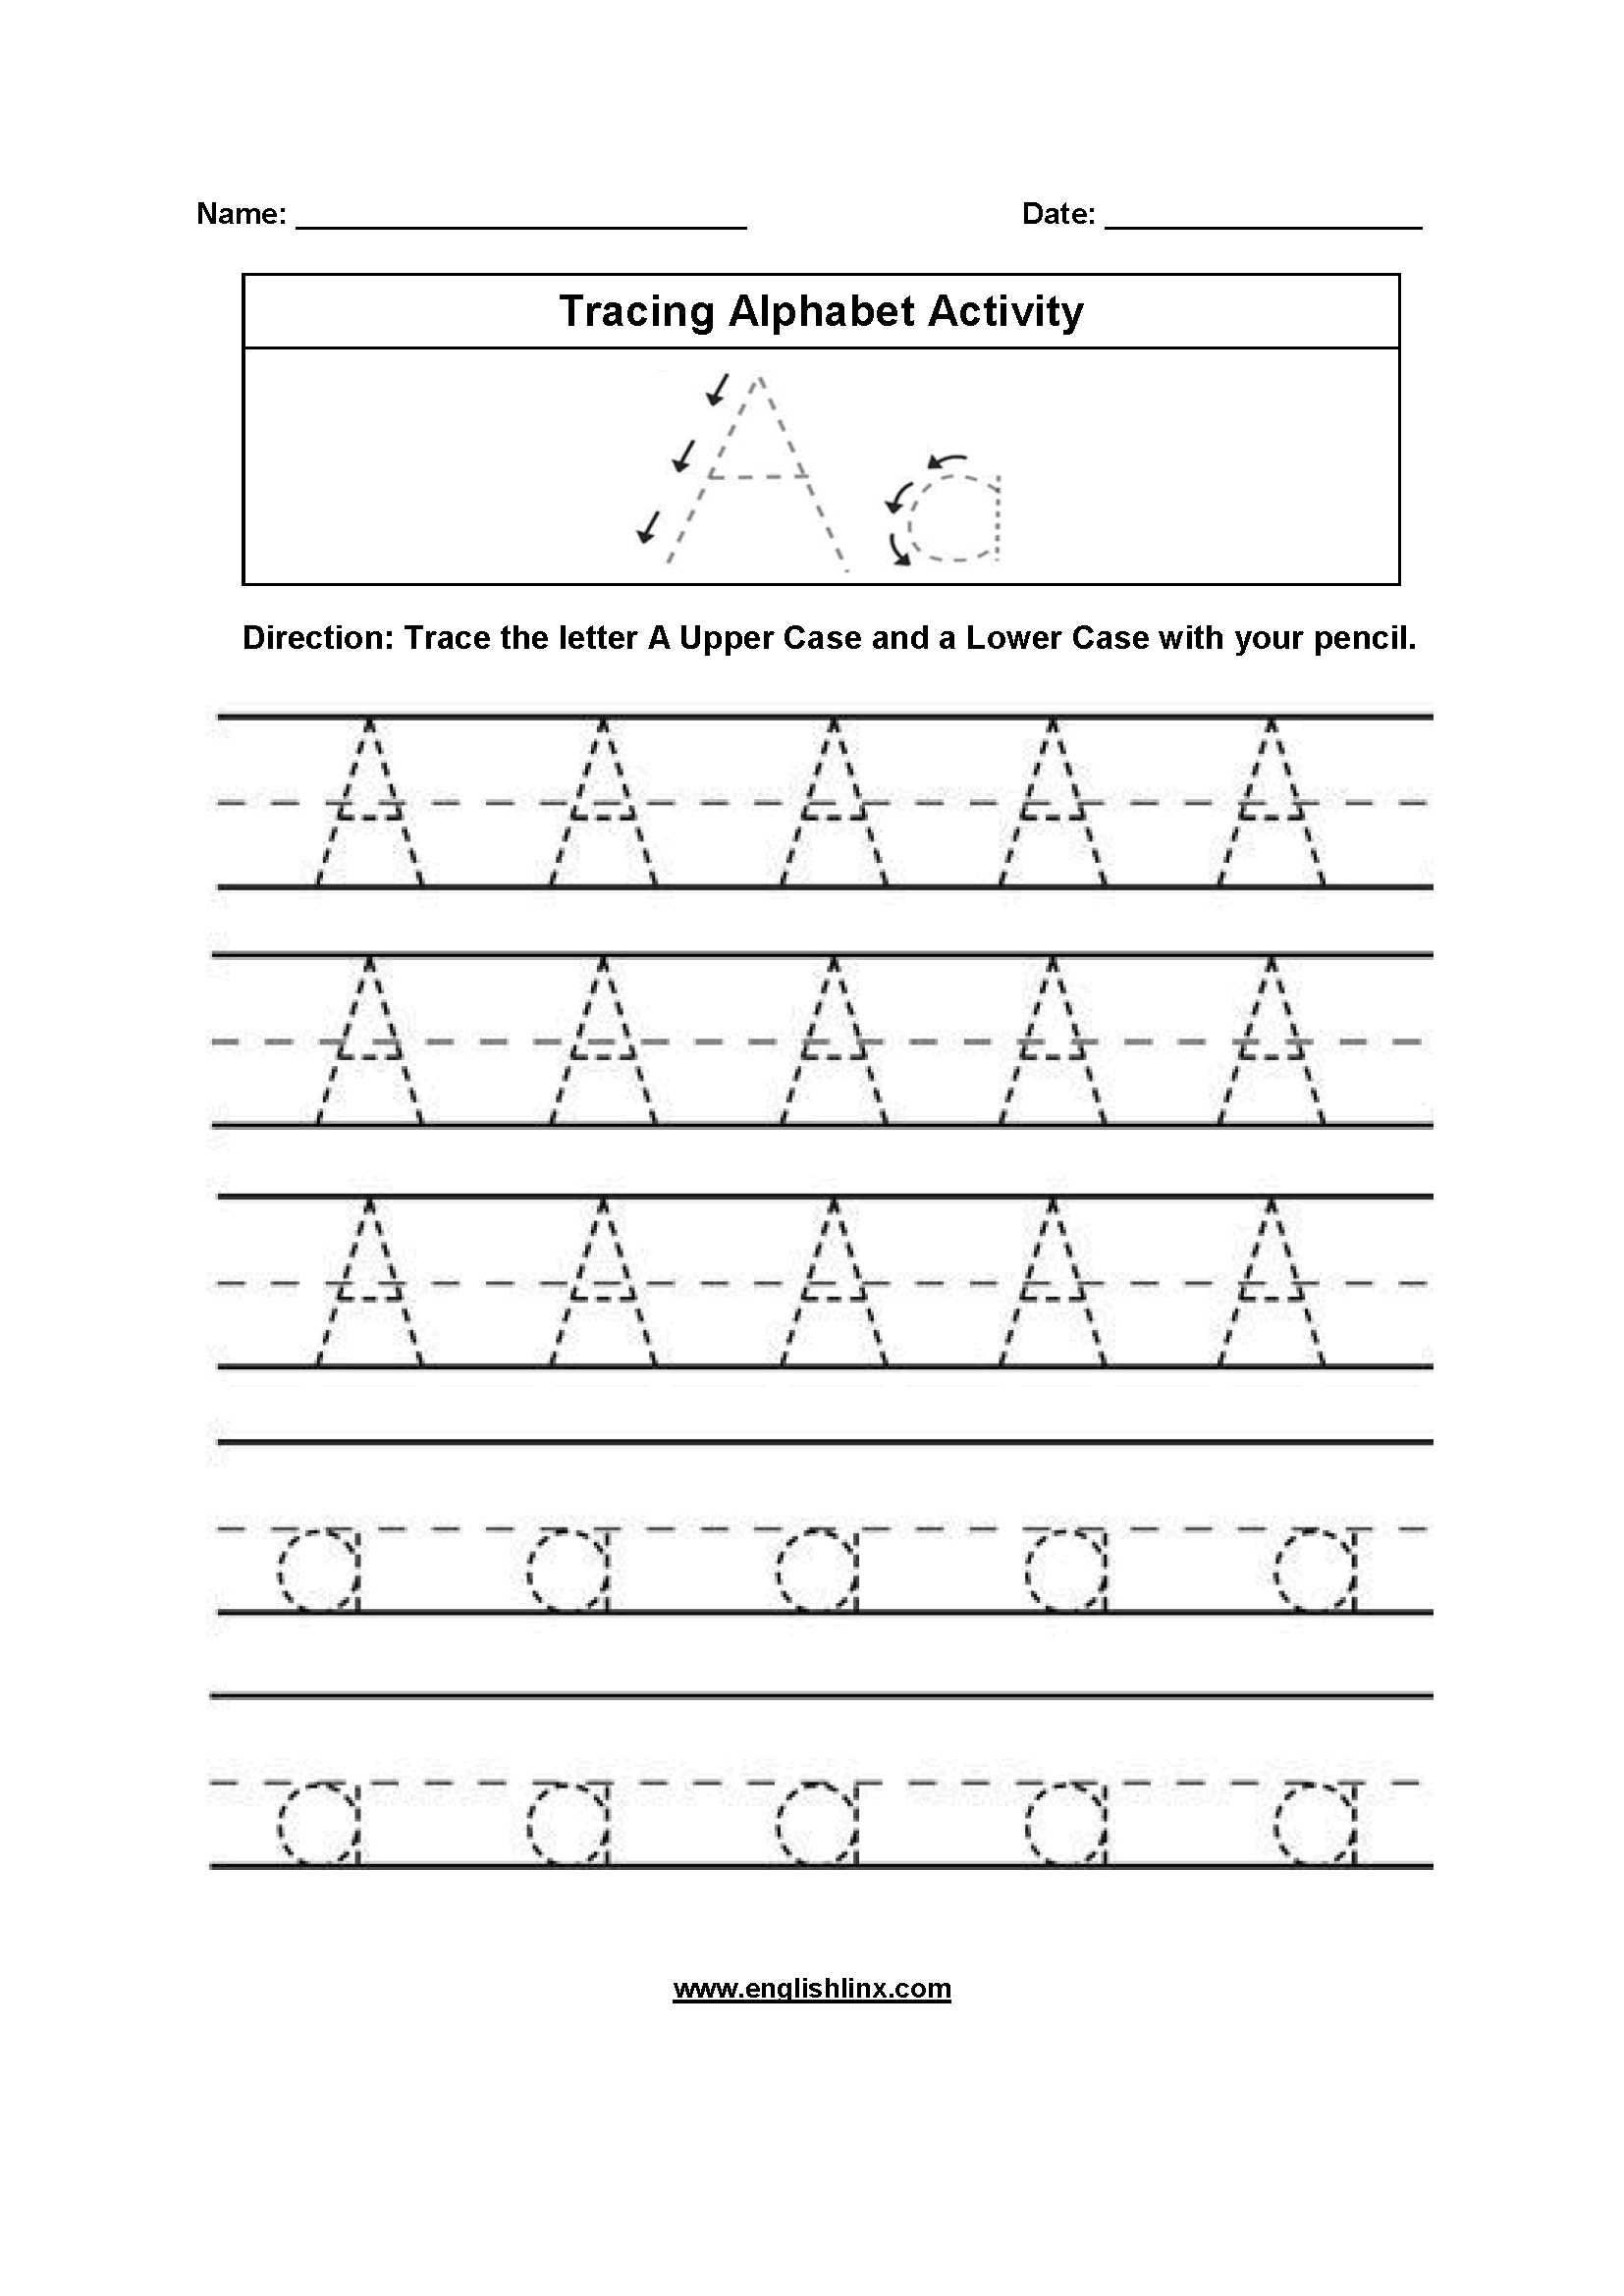 Alphabet Worksheets | Tracing Alphabet Worksheets inside Alphabet Tracing Worksheets Pdf